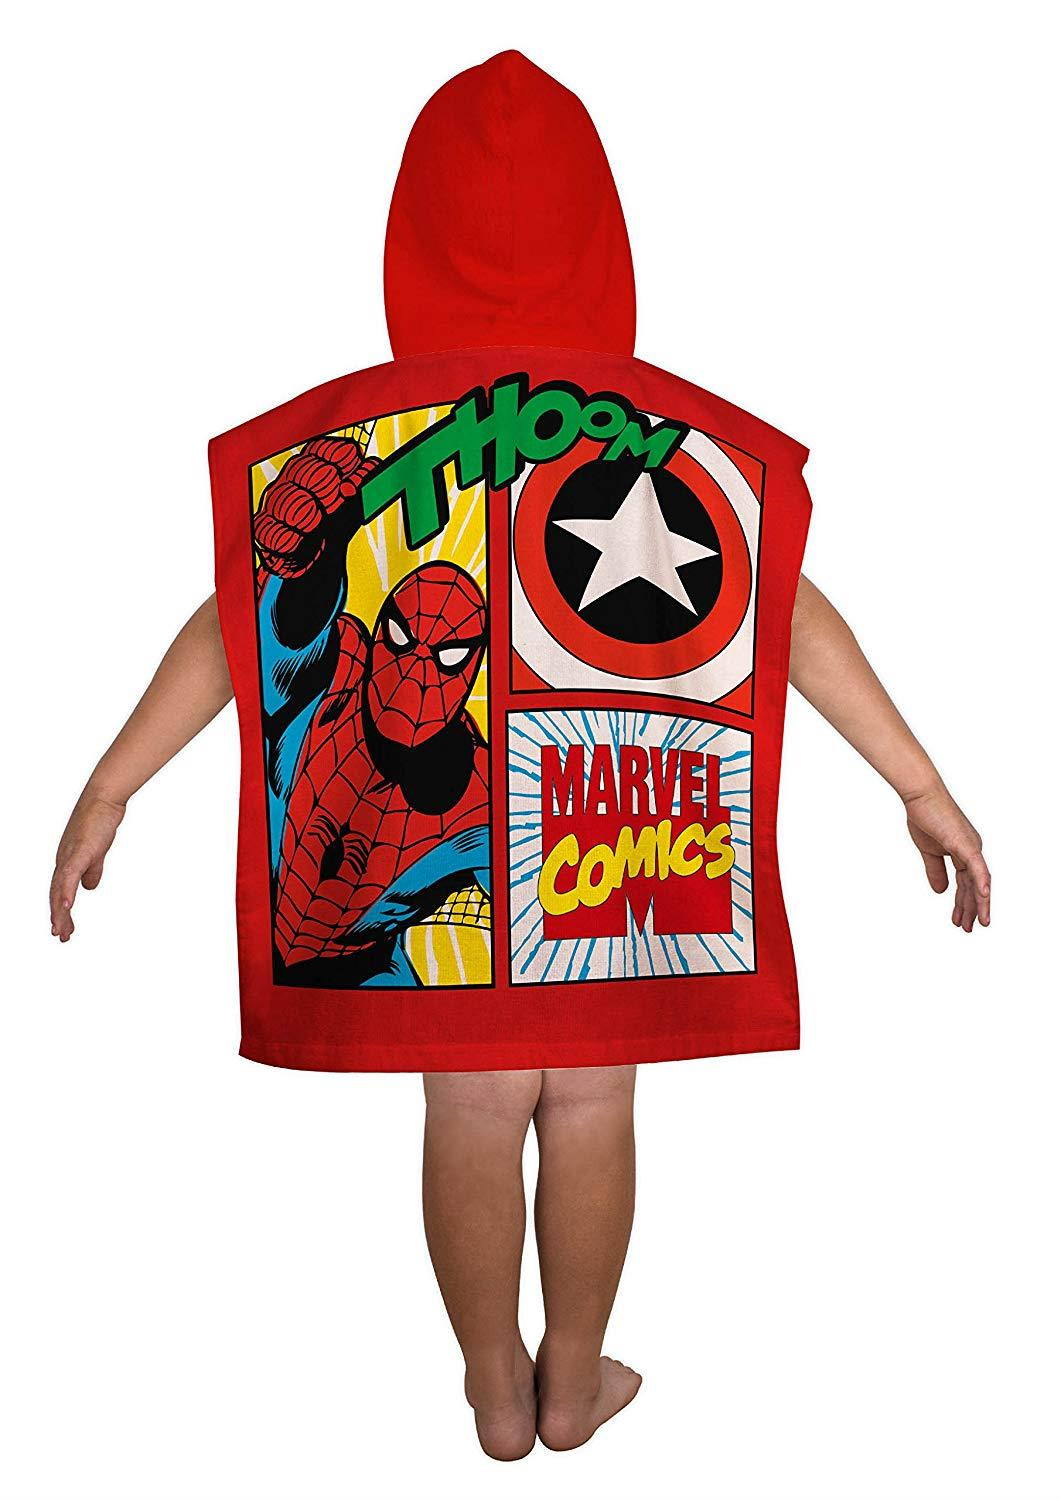 Kids-Boys-Novelty-Girls-Character-Hooded-Towel-Poncho-Beach-Bath-Swim thumbnail 14